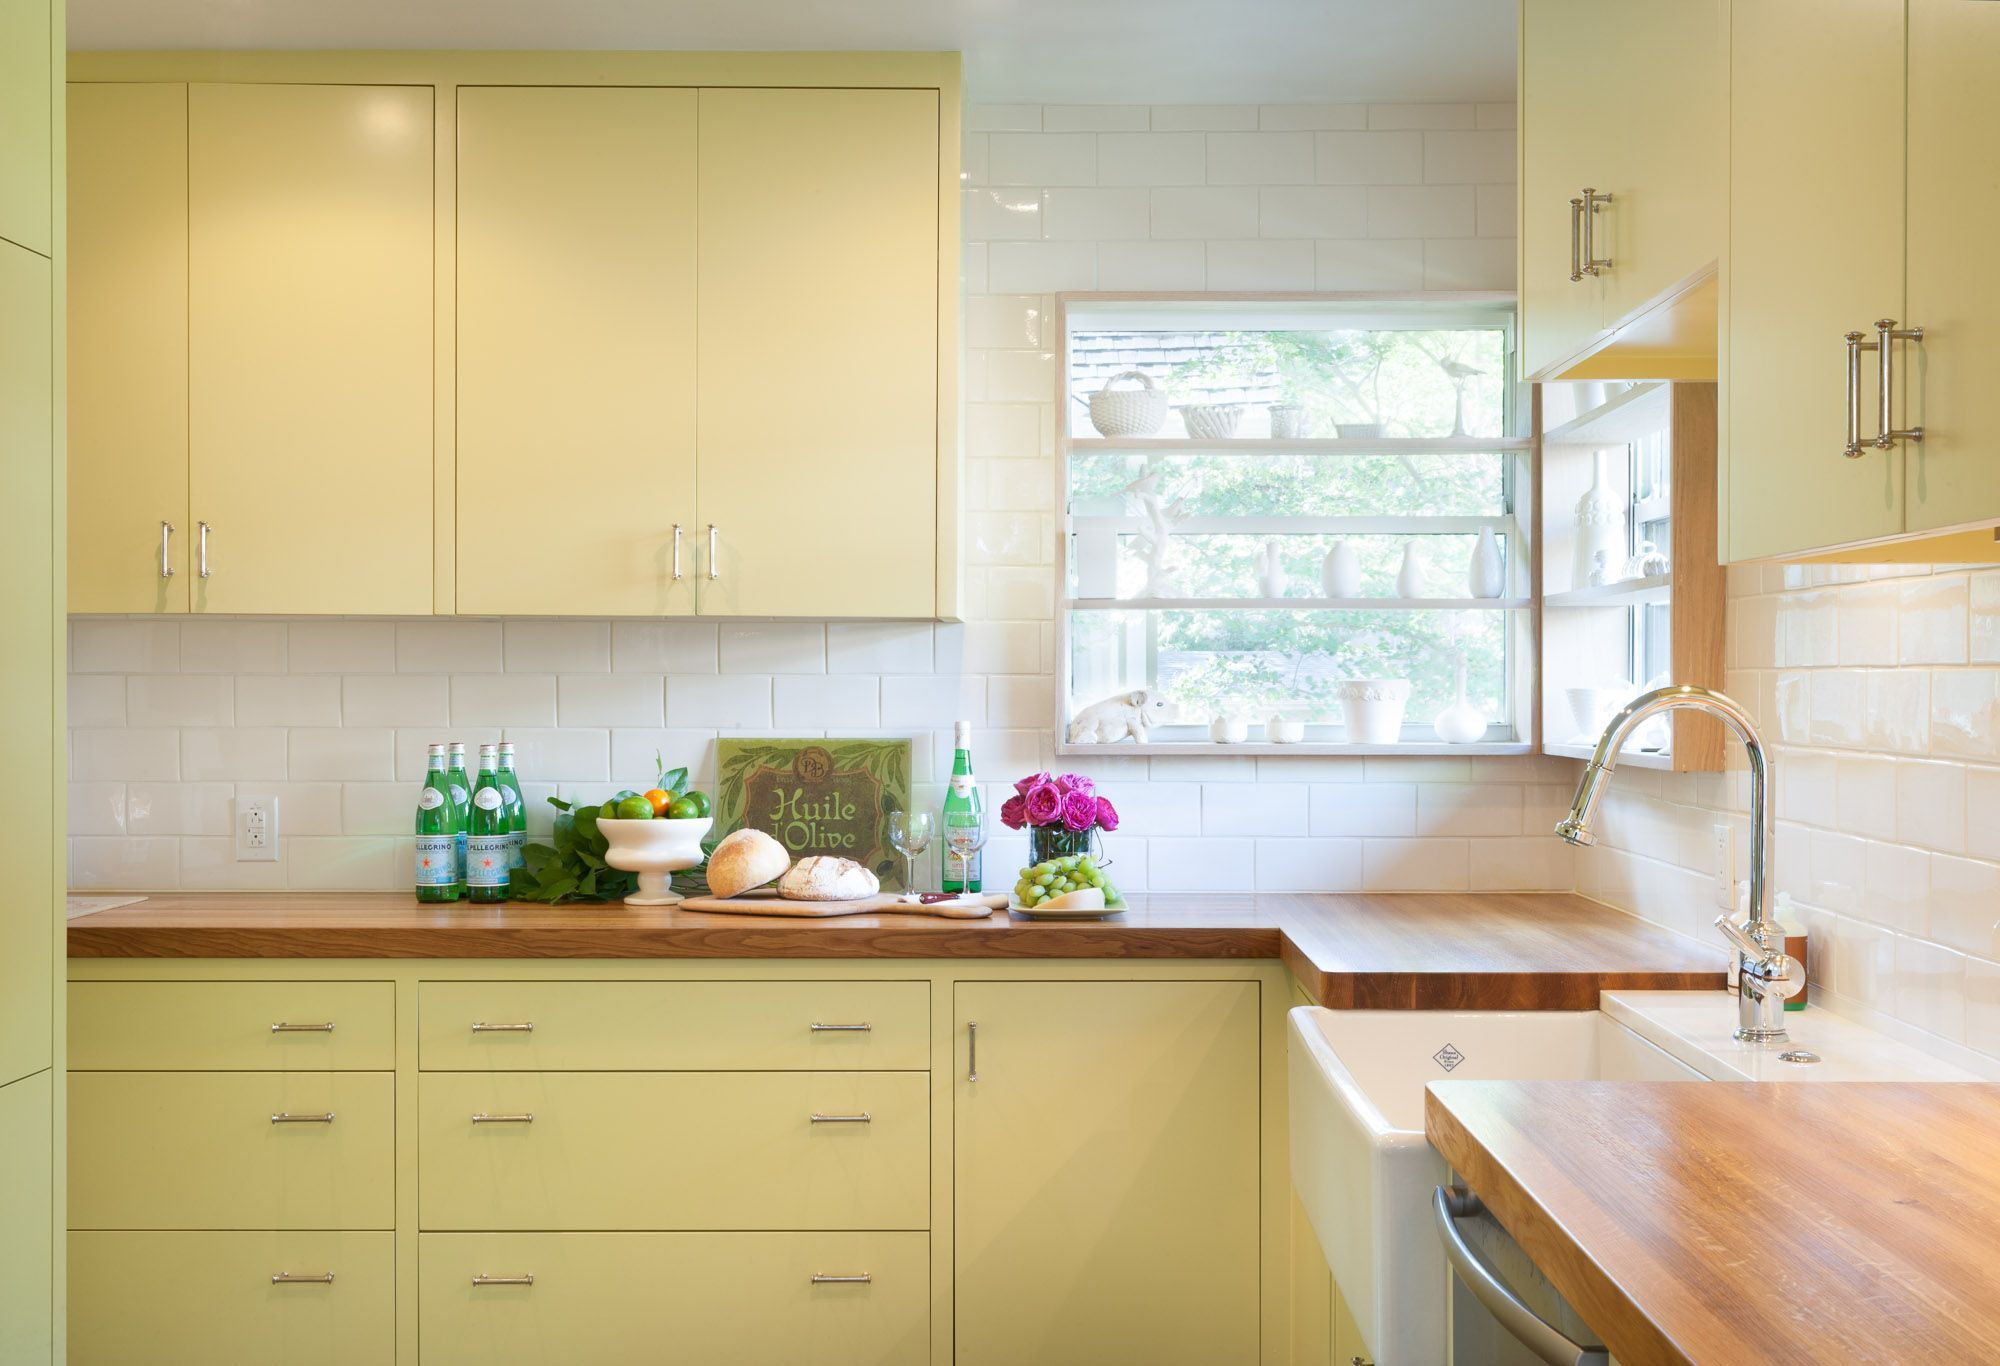 Photo Gallery Of Sinks In Wood Countertops Yellow Kitchen Cabinets Kitchen Design Modern Small Kitchen Design Small